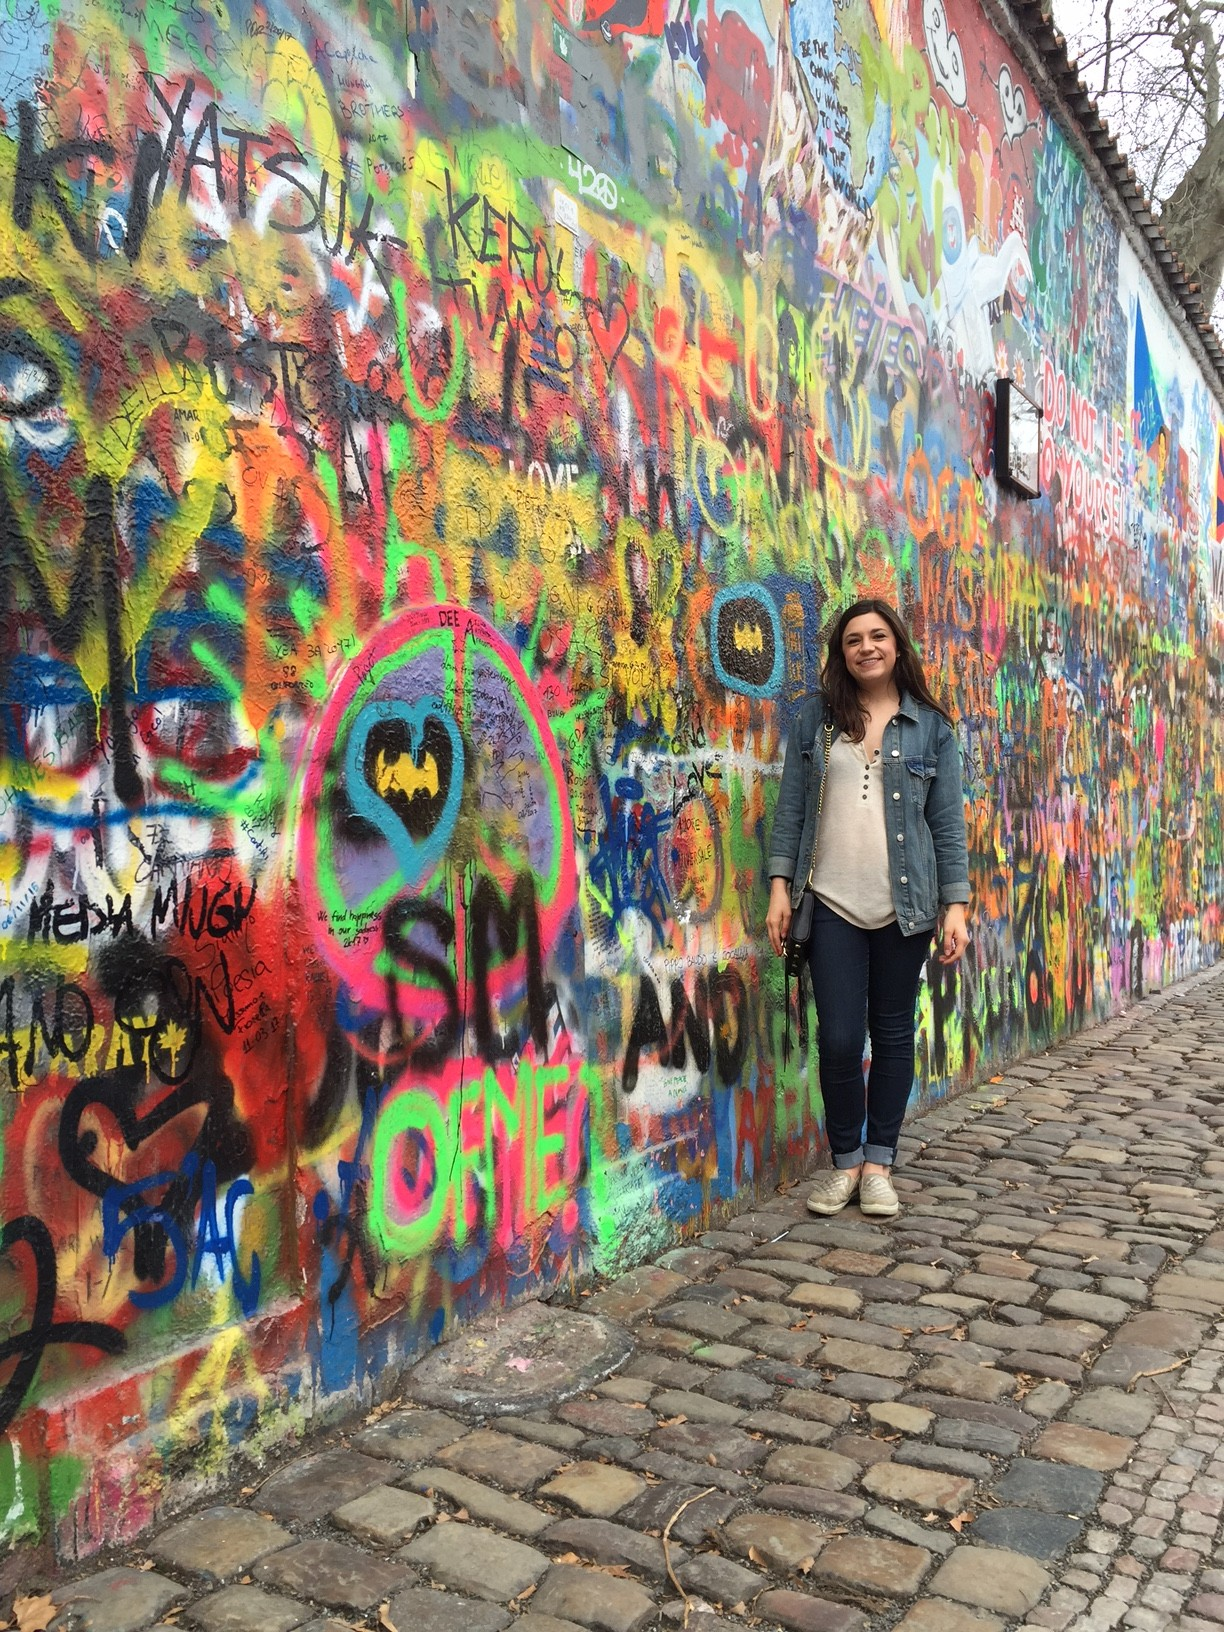 If you ever go to Prague, make sure to stop by the Lennon wall! It's super cool!